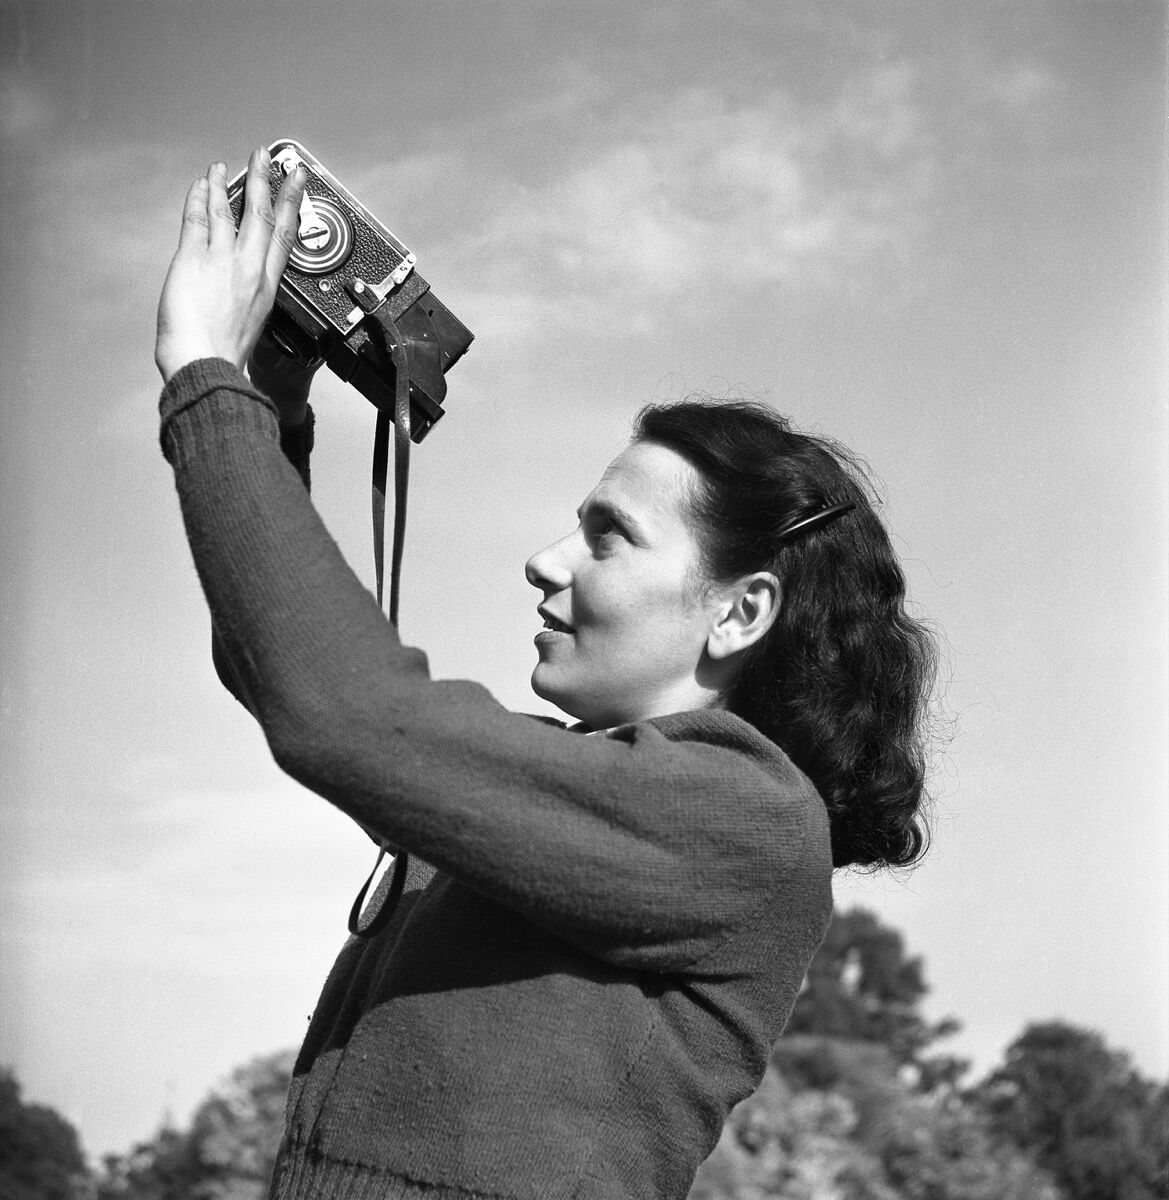 Henk Jonker, Maria Austria with camera, 1946. © Henk Jonker / MAI. Courtesy of the Jewish Historical Museum, Amsterdam.